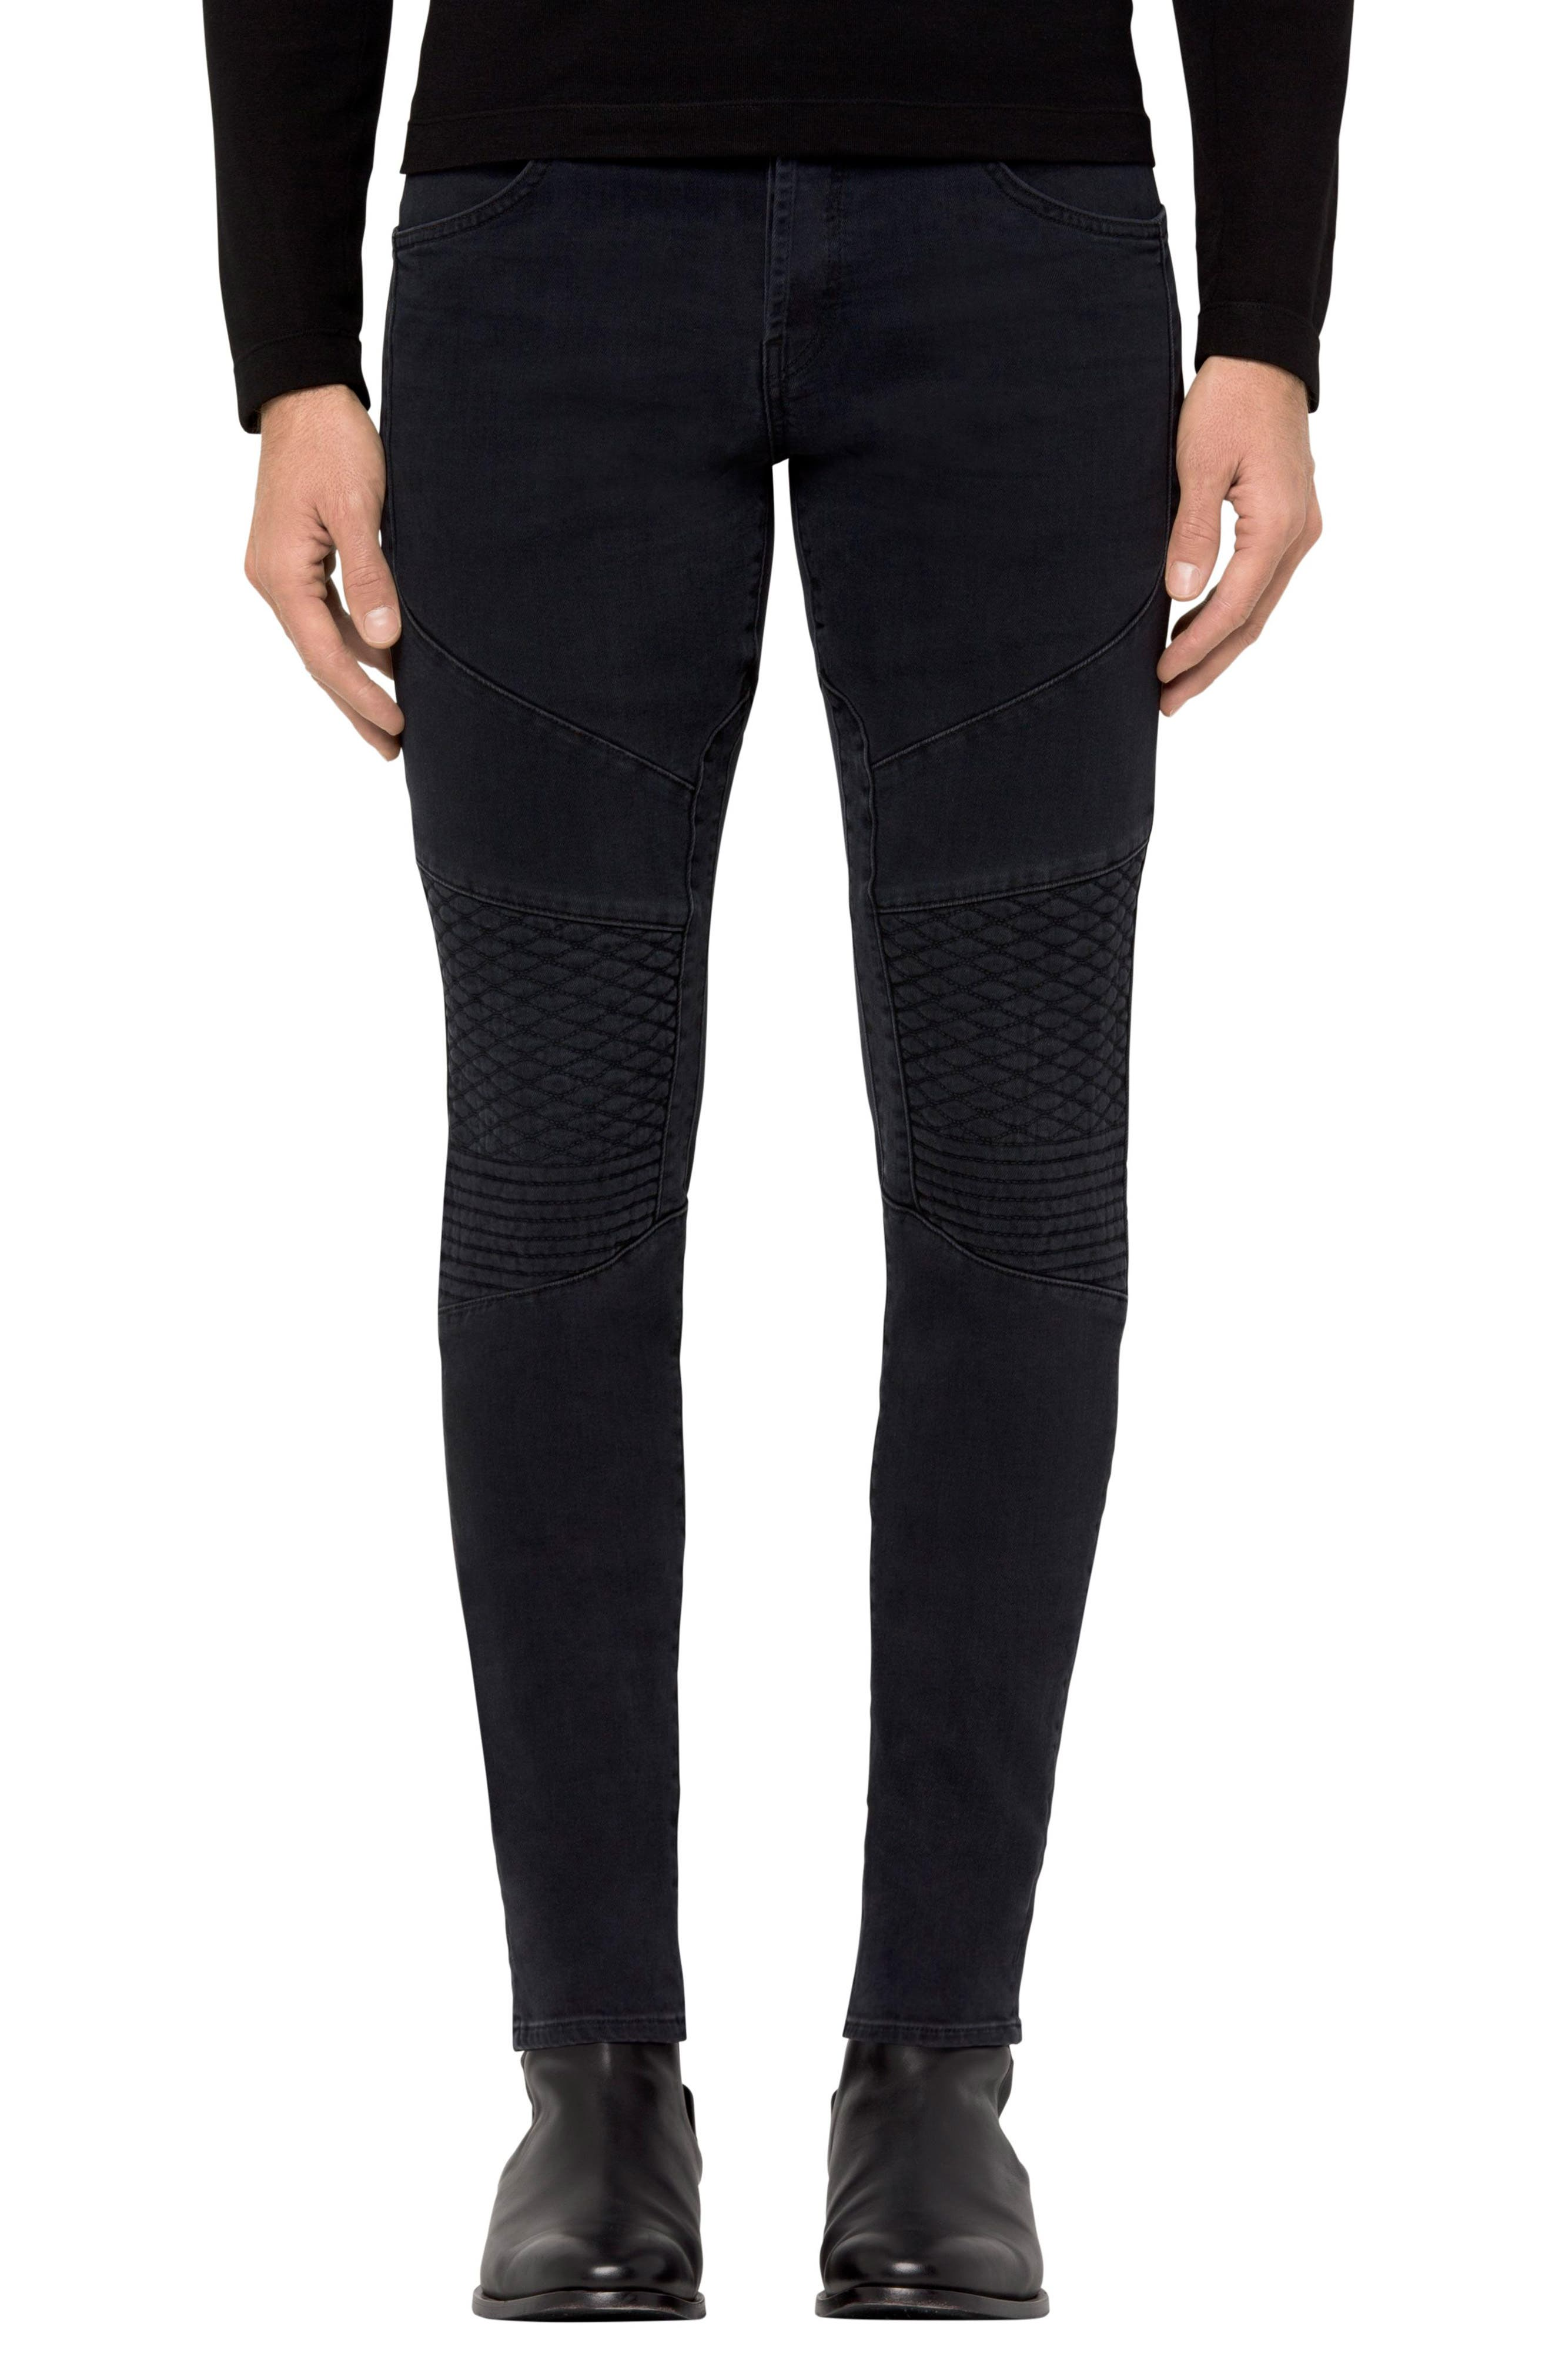 Bearden Moto Skinny Fit Jeans,                         Main,                         color, 002